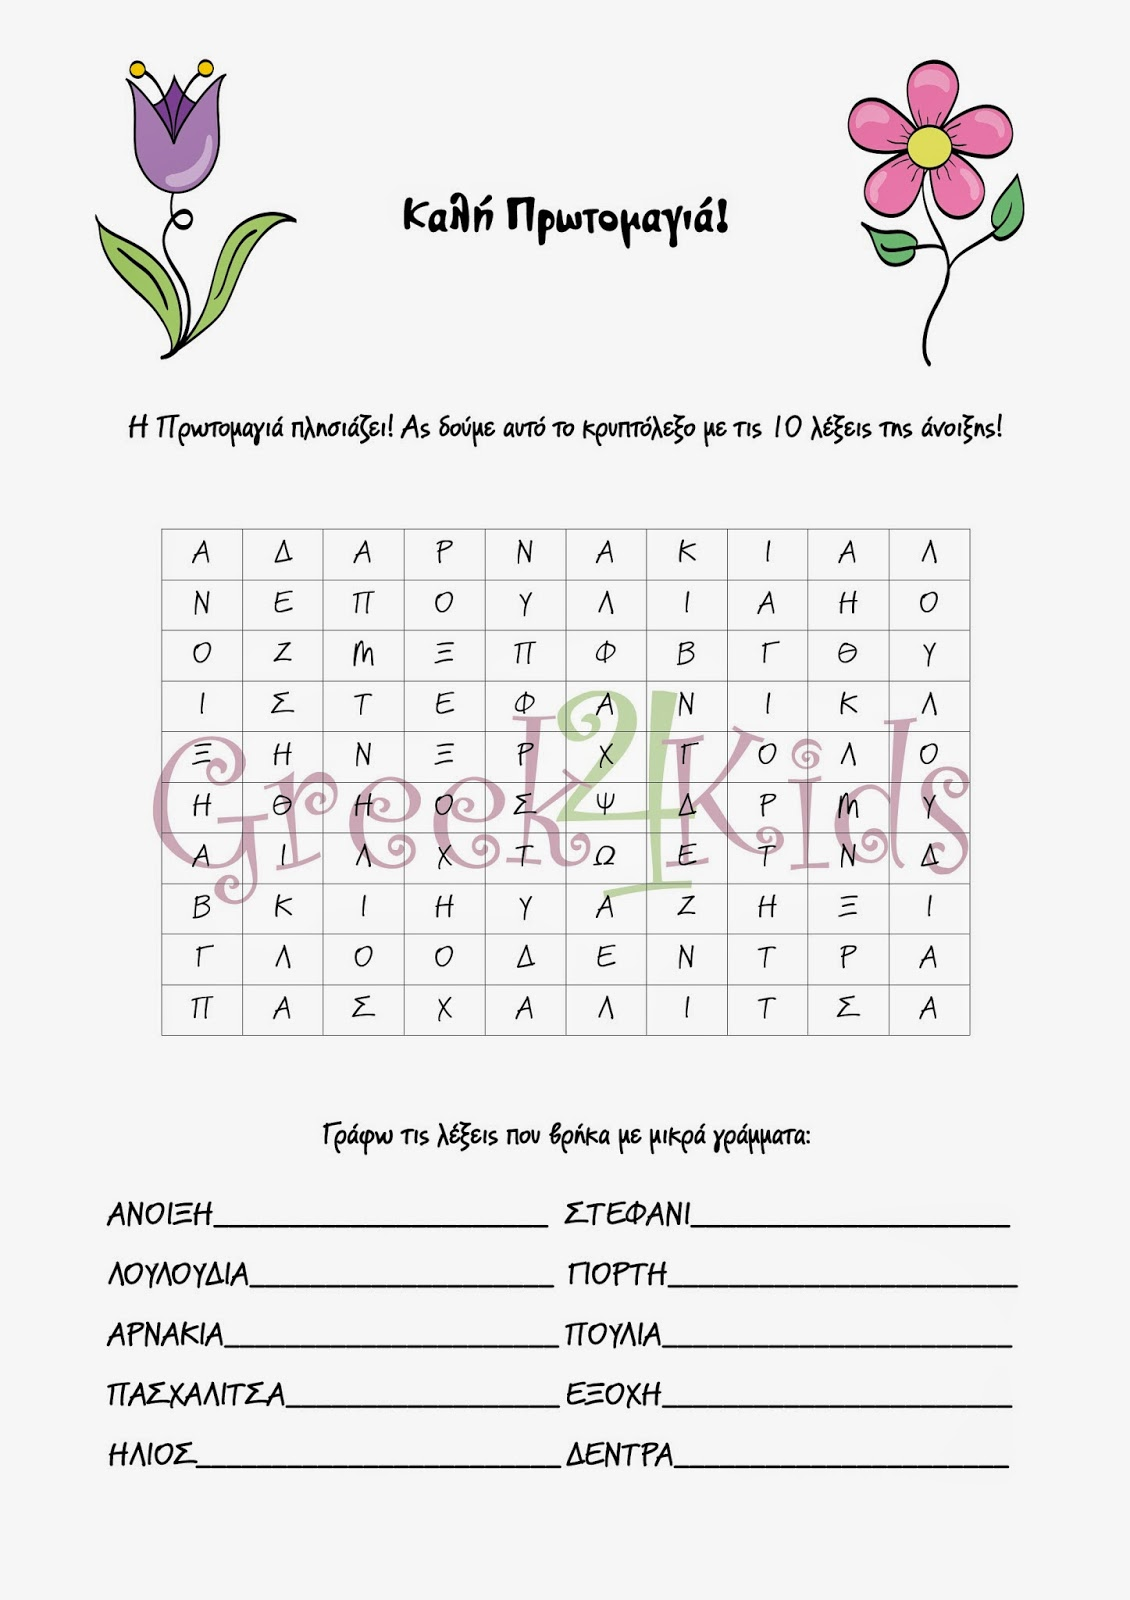 www.c7641462.myzen.co.uk/Greek4Kids/Worksheets/Protomagia.pdf